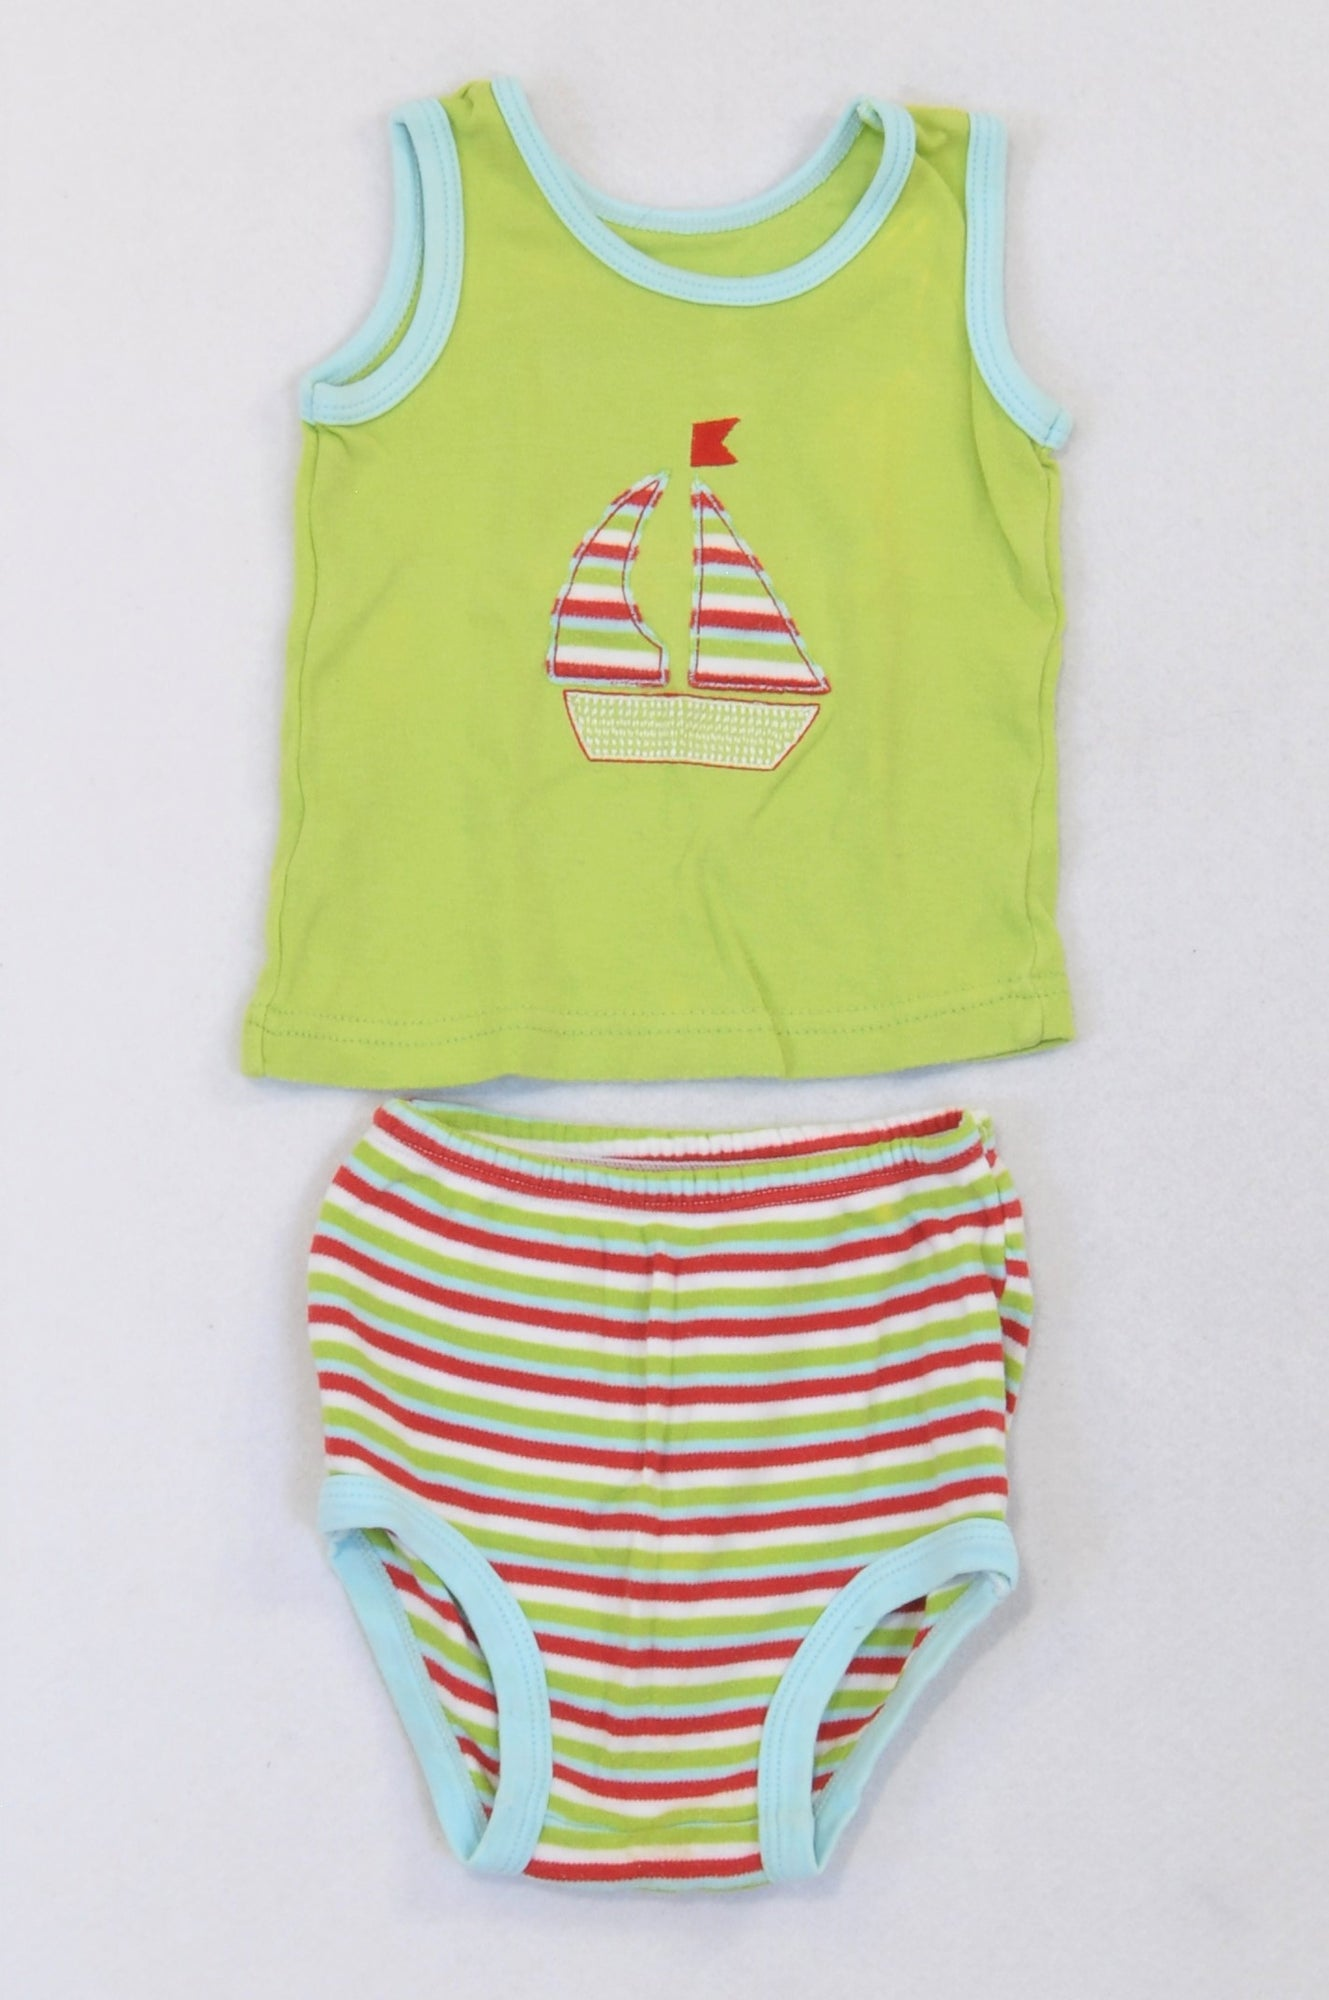 Woolworths Bright Green Sailboat T-Shirt & Striped Bloomers Outfit Boys 3-6 months